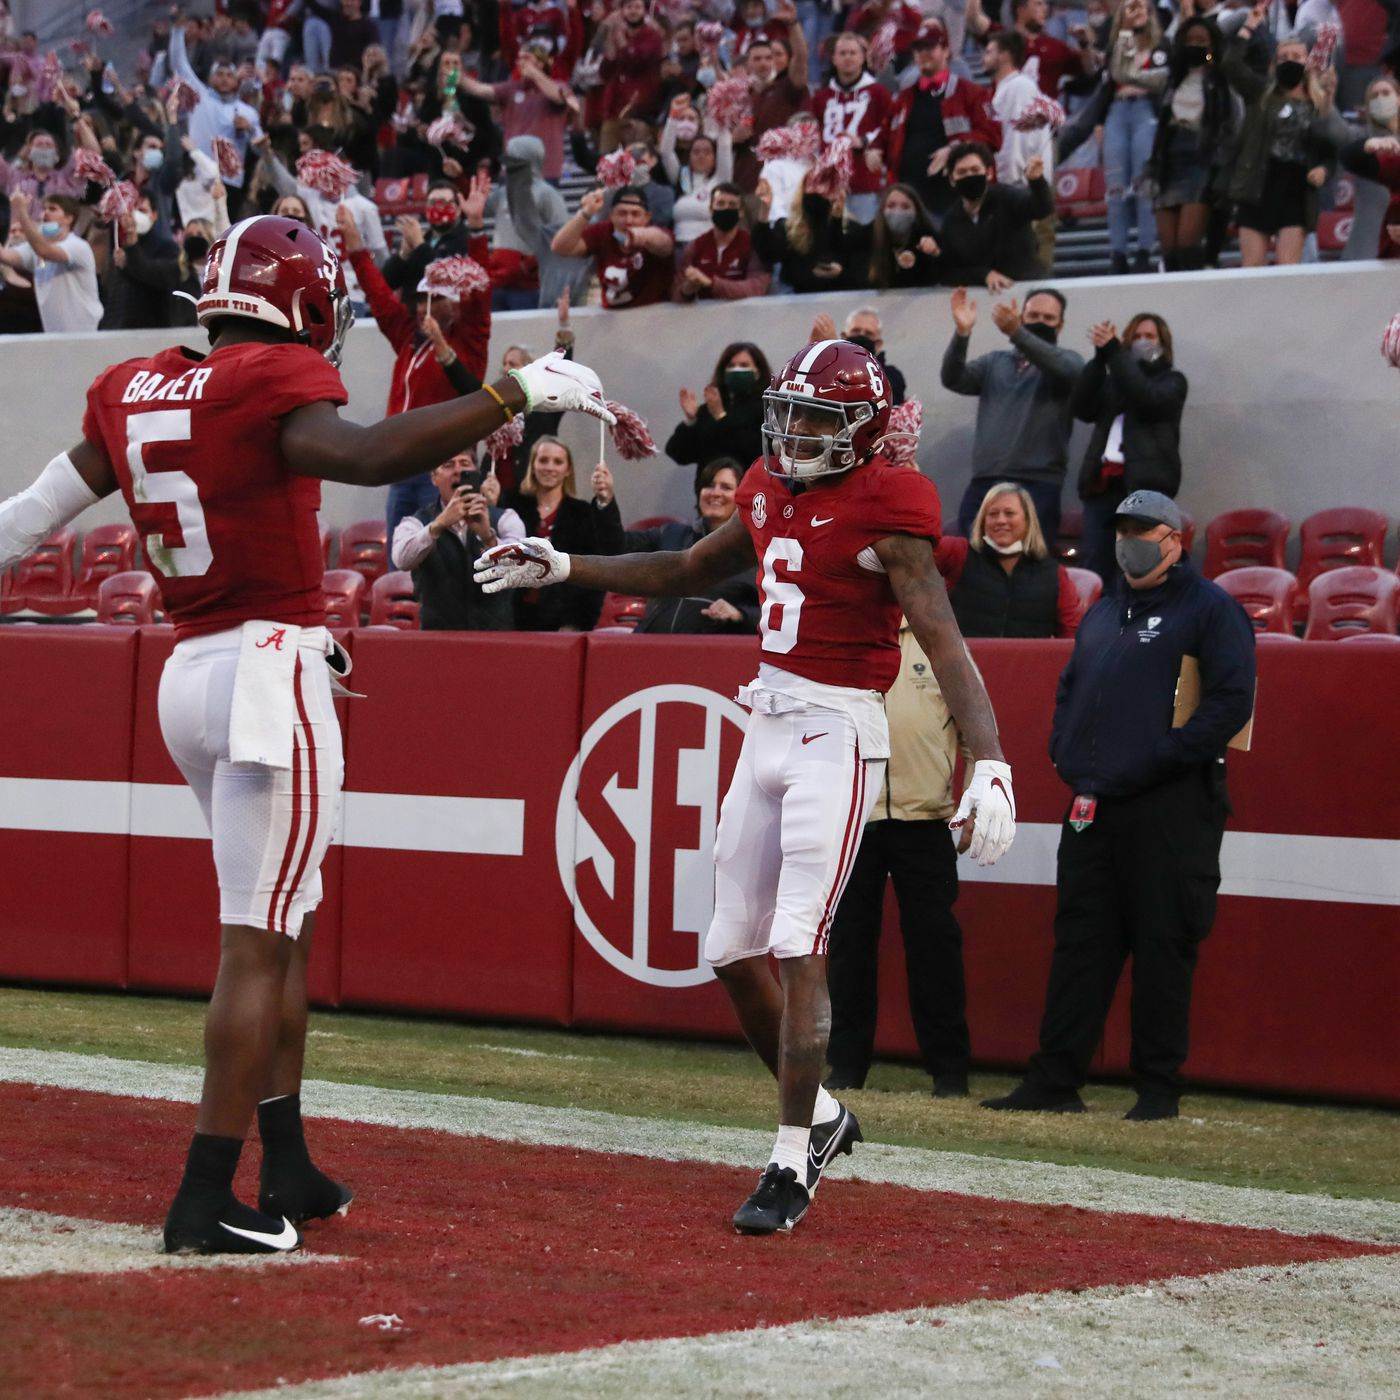 Alabama Football Vs Lsu Preview Can The Tiger Defense Slow Down Mac Jones And The Crimson Tide Offense Roll Bama Roll